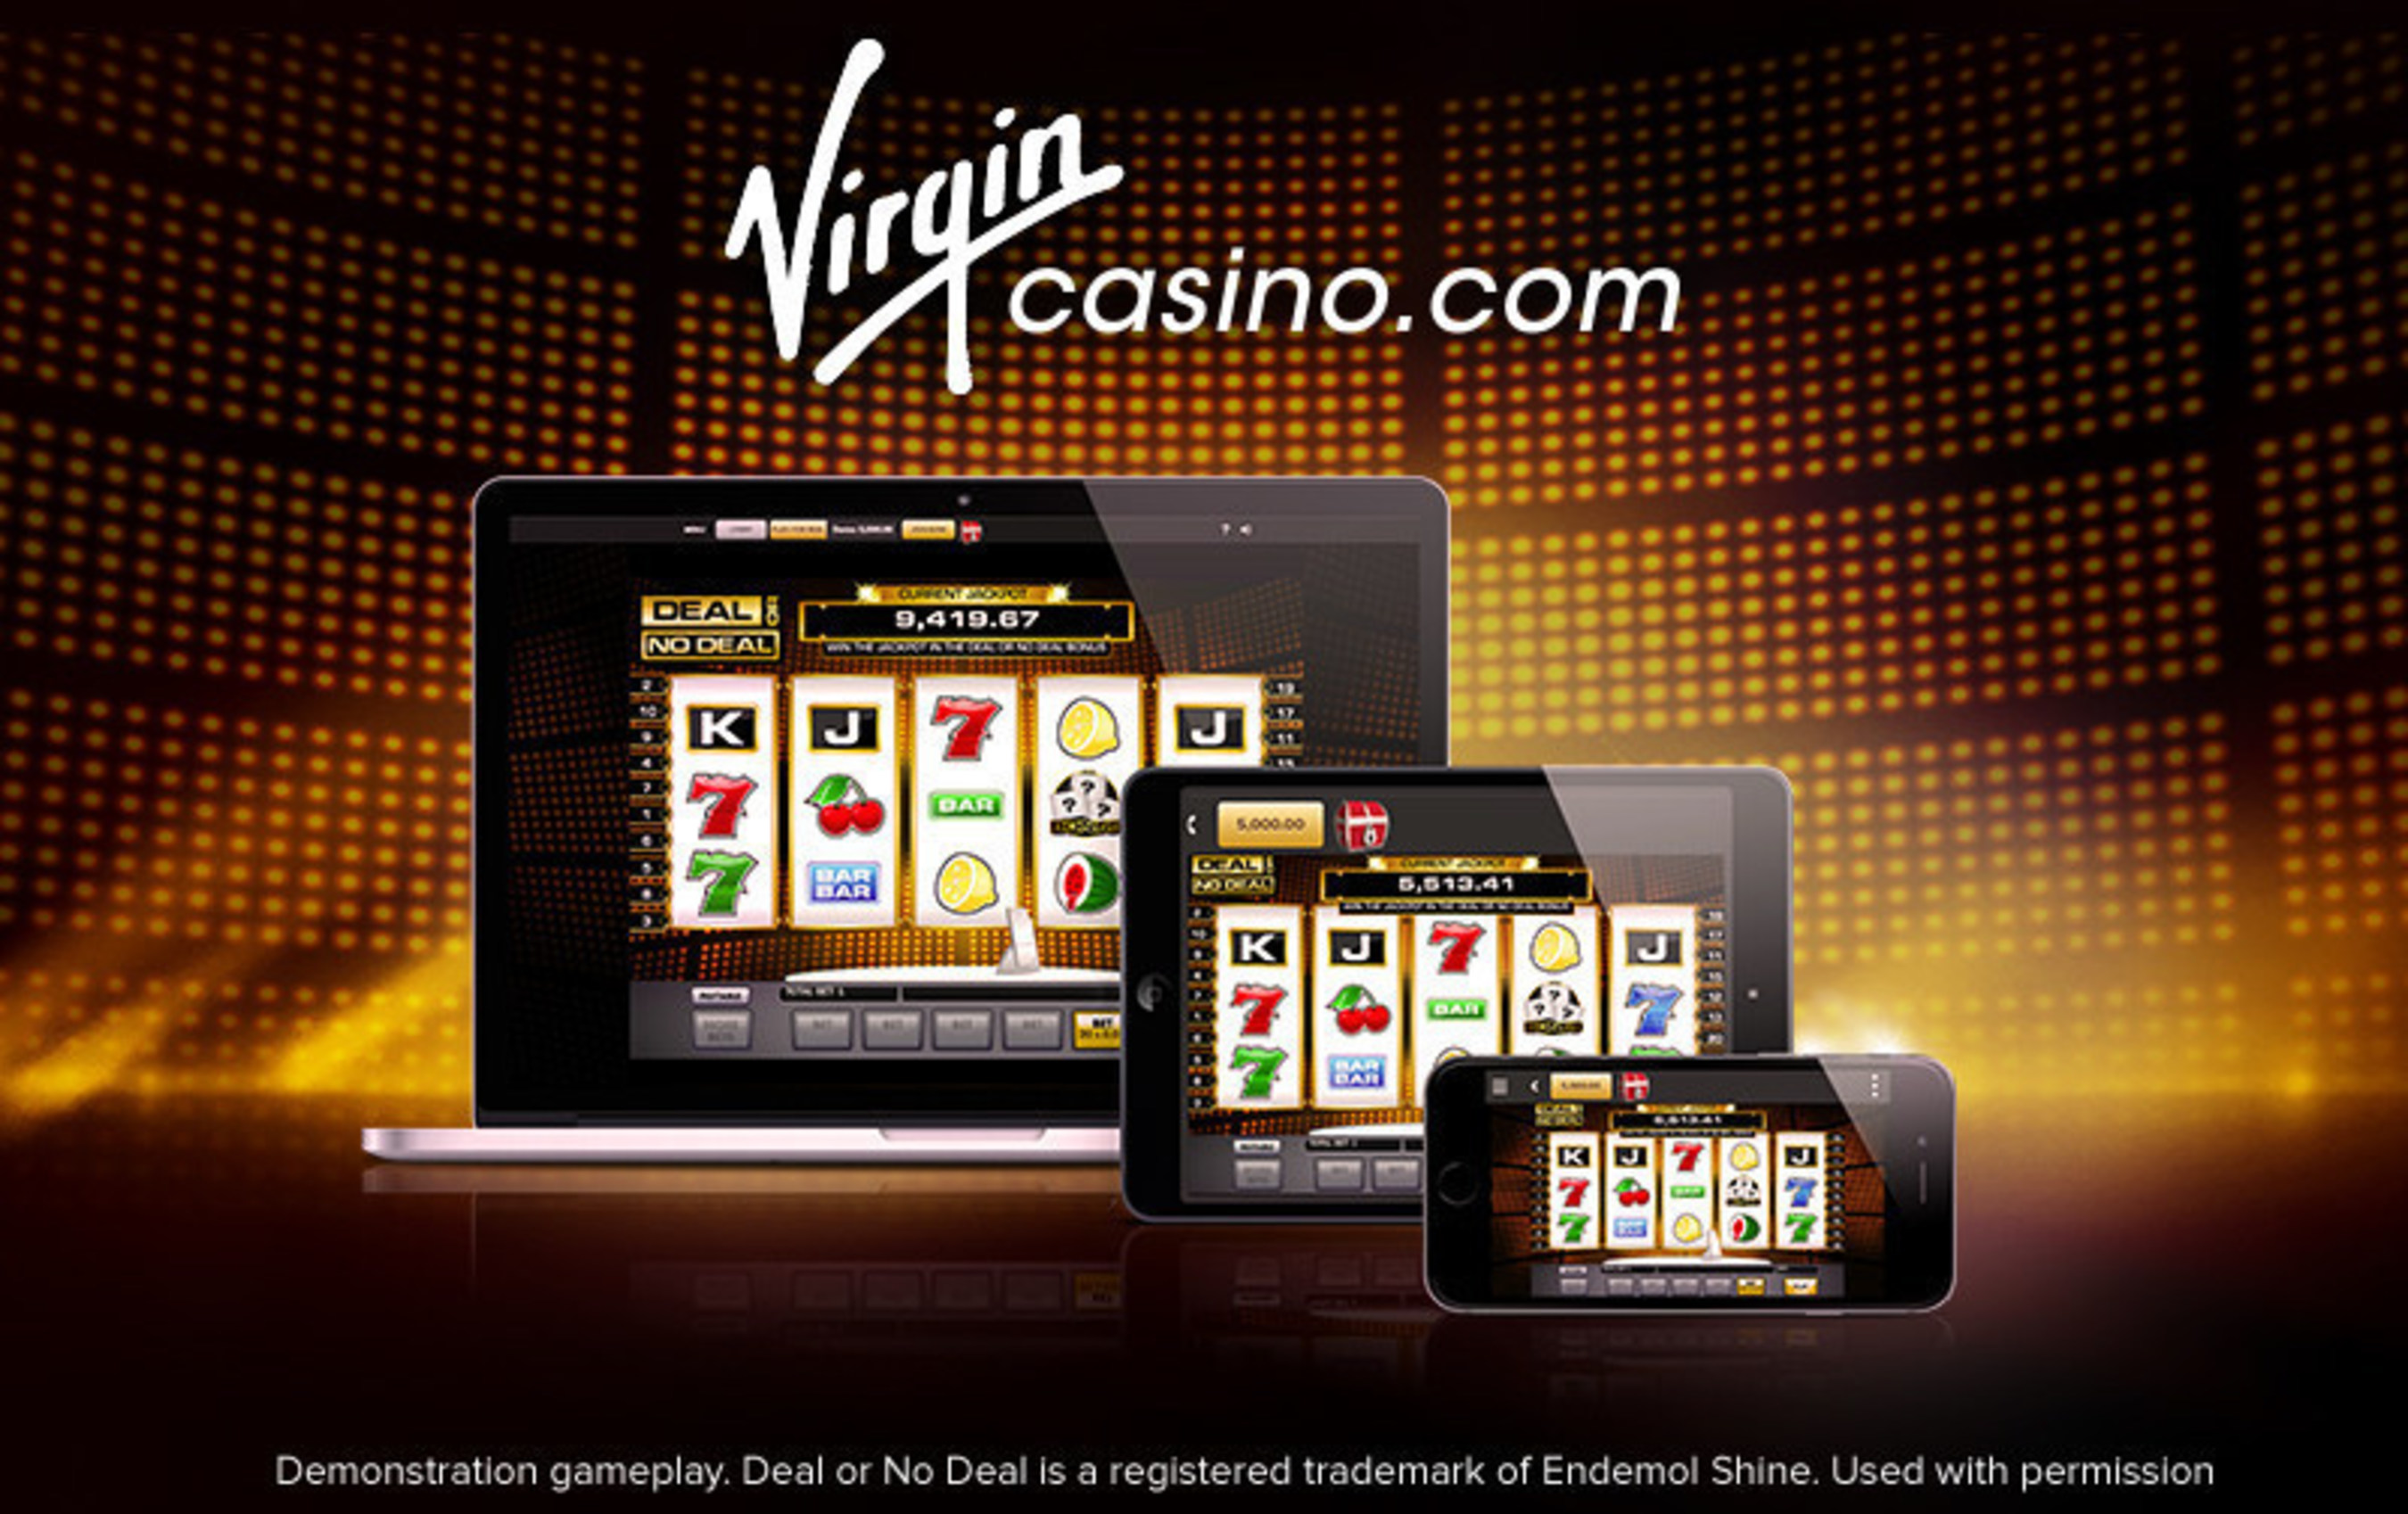 The Deal or No Deal real money slot game available exclusively on VirginCasino.com.